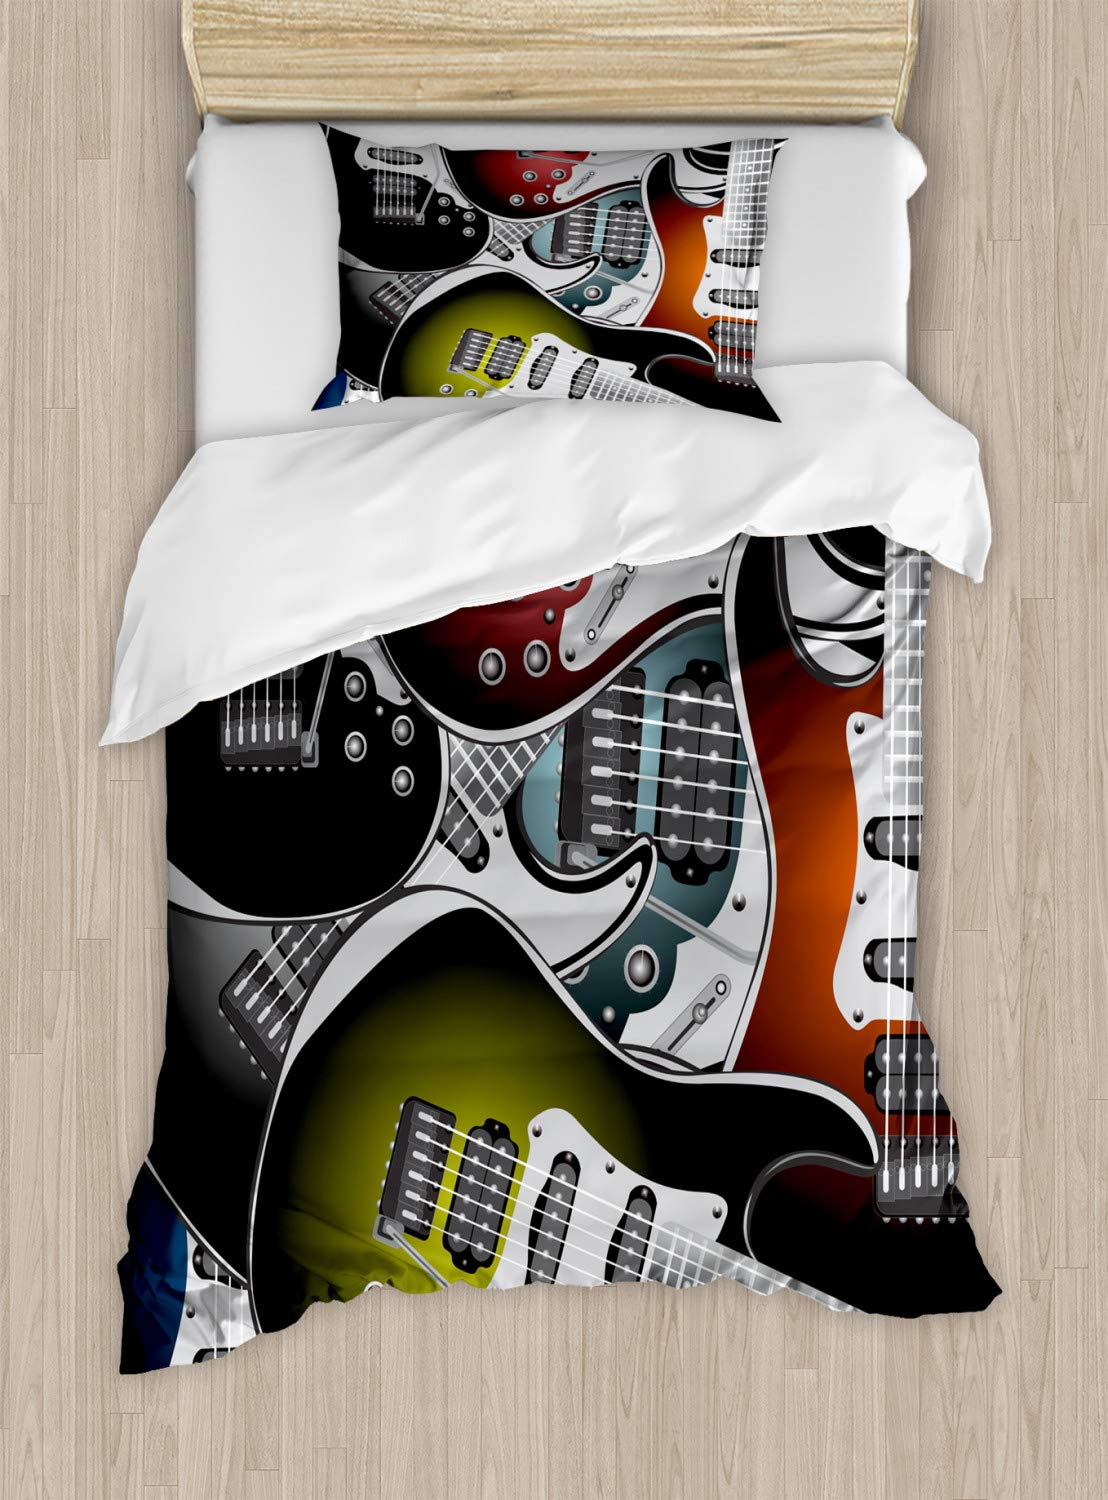 Ambesonne Popstar Party Duvet Cover Set Twin Size, Pile of Graphic Colorful Electric Guitars Rock Music Stringed Instruments, Decorative 2 Piece Bedding Set with 1 Pillow Sham, Black Coral